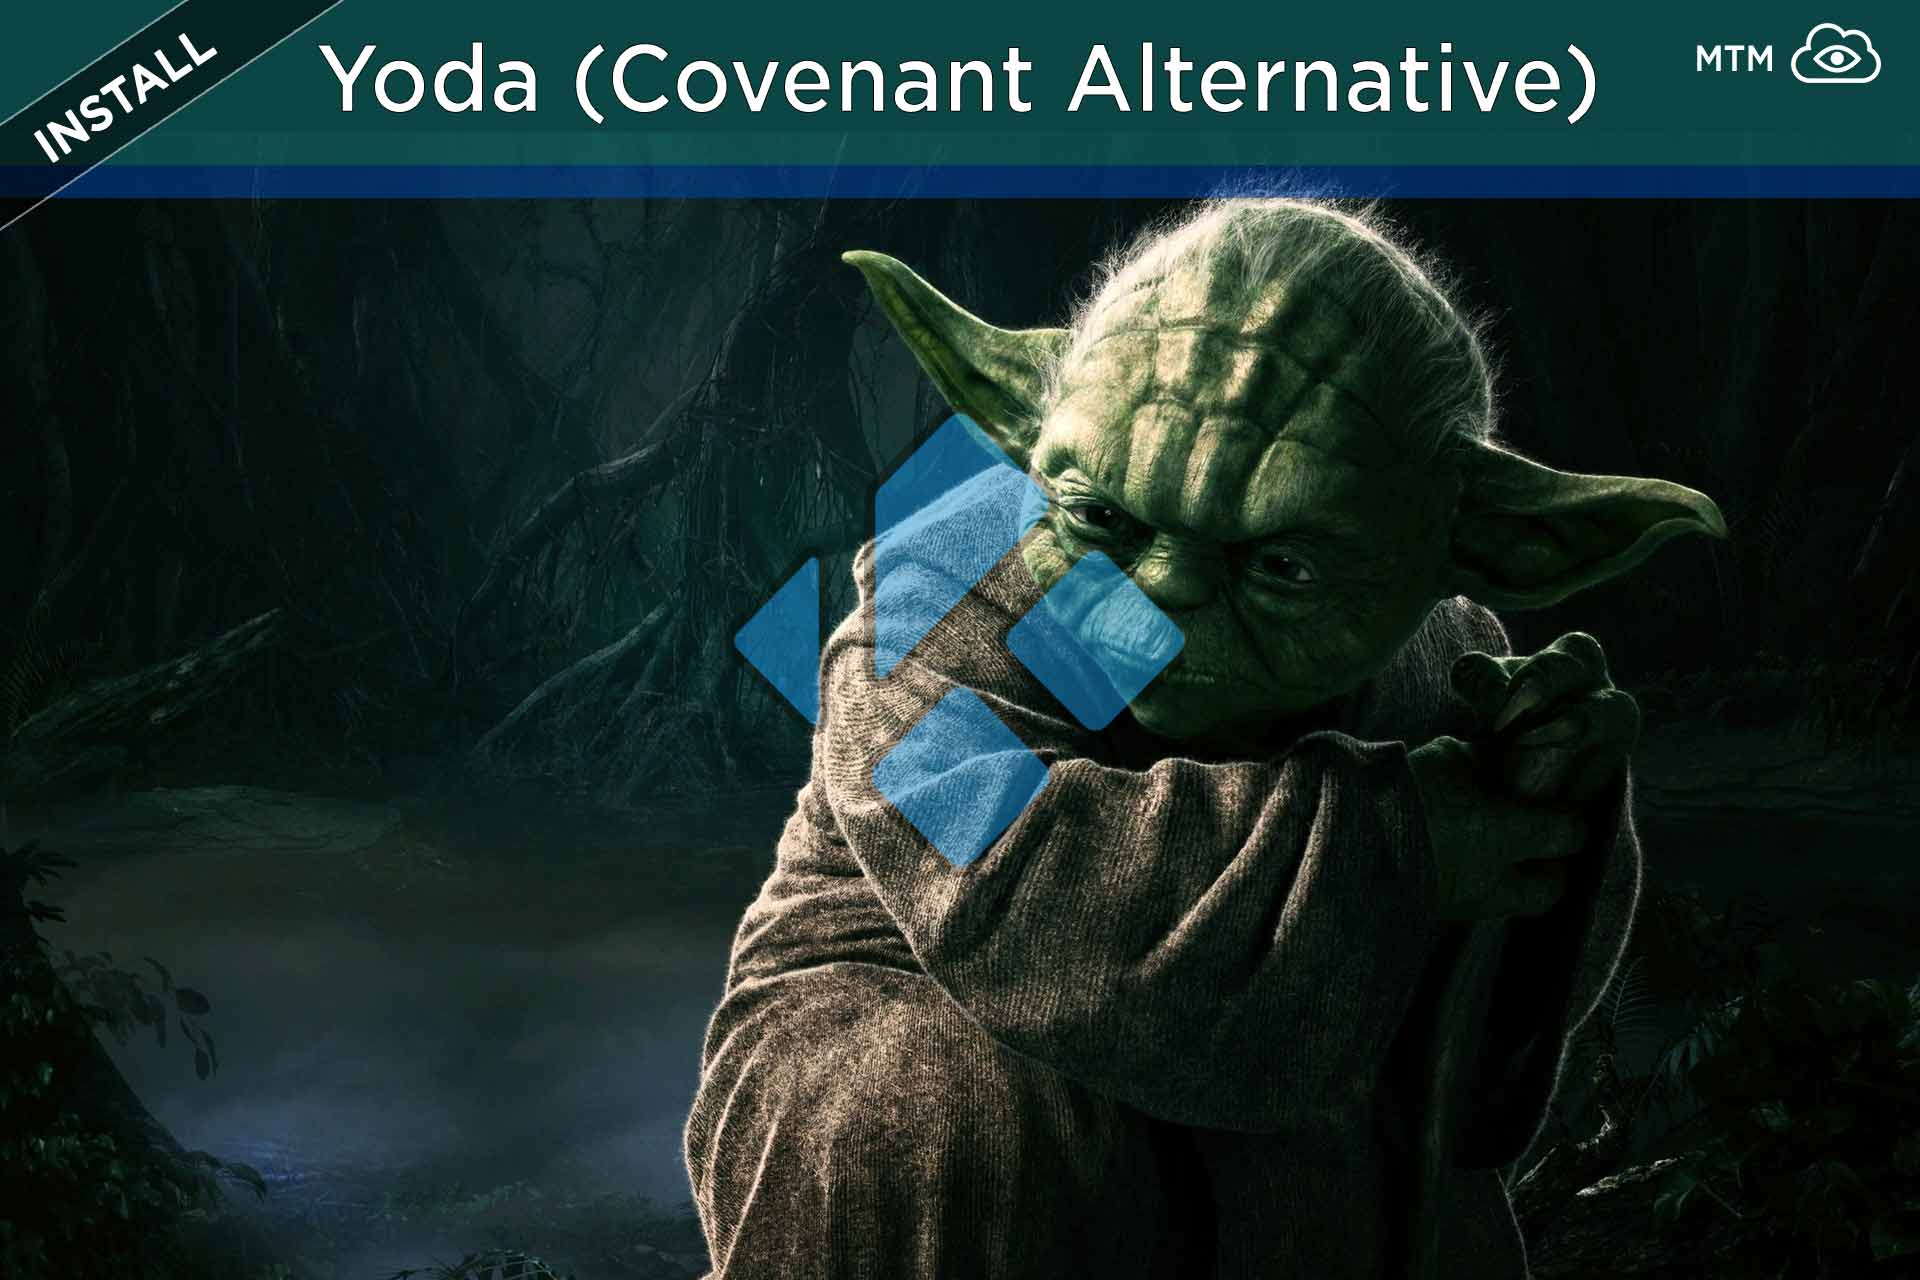 How to install Yoda Addon on Kodi 18 Leia or 17 6 Krypton